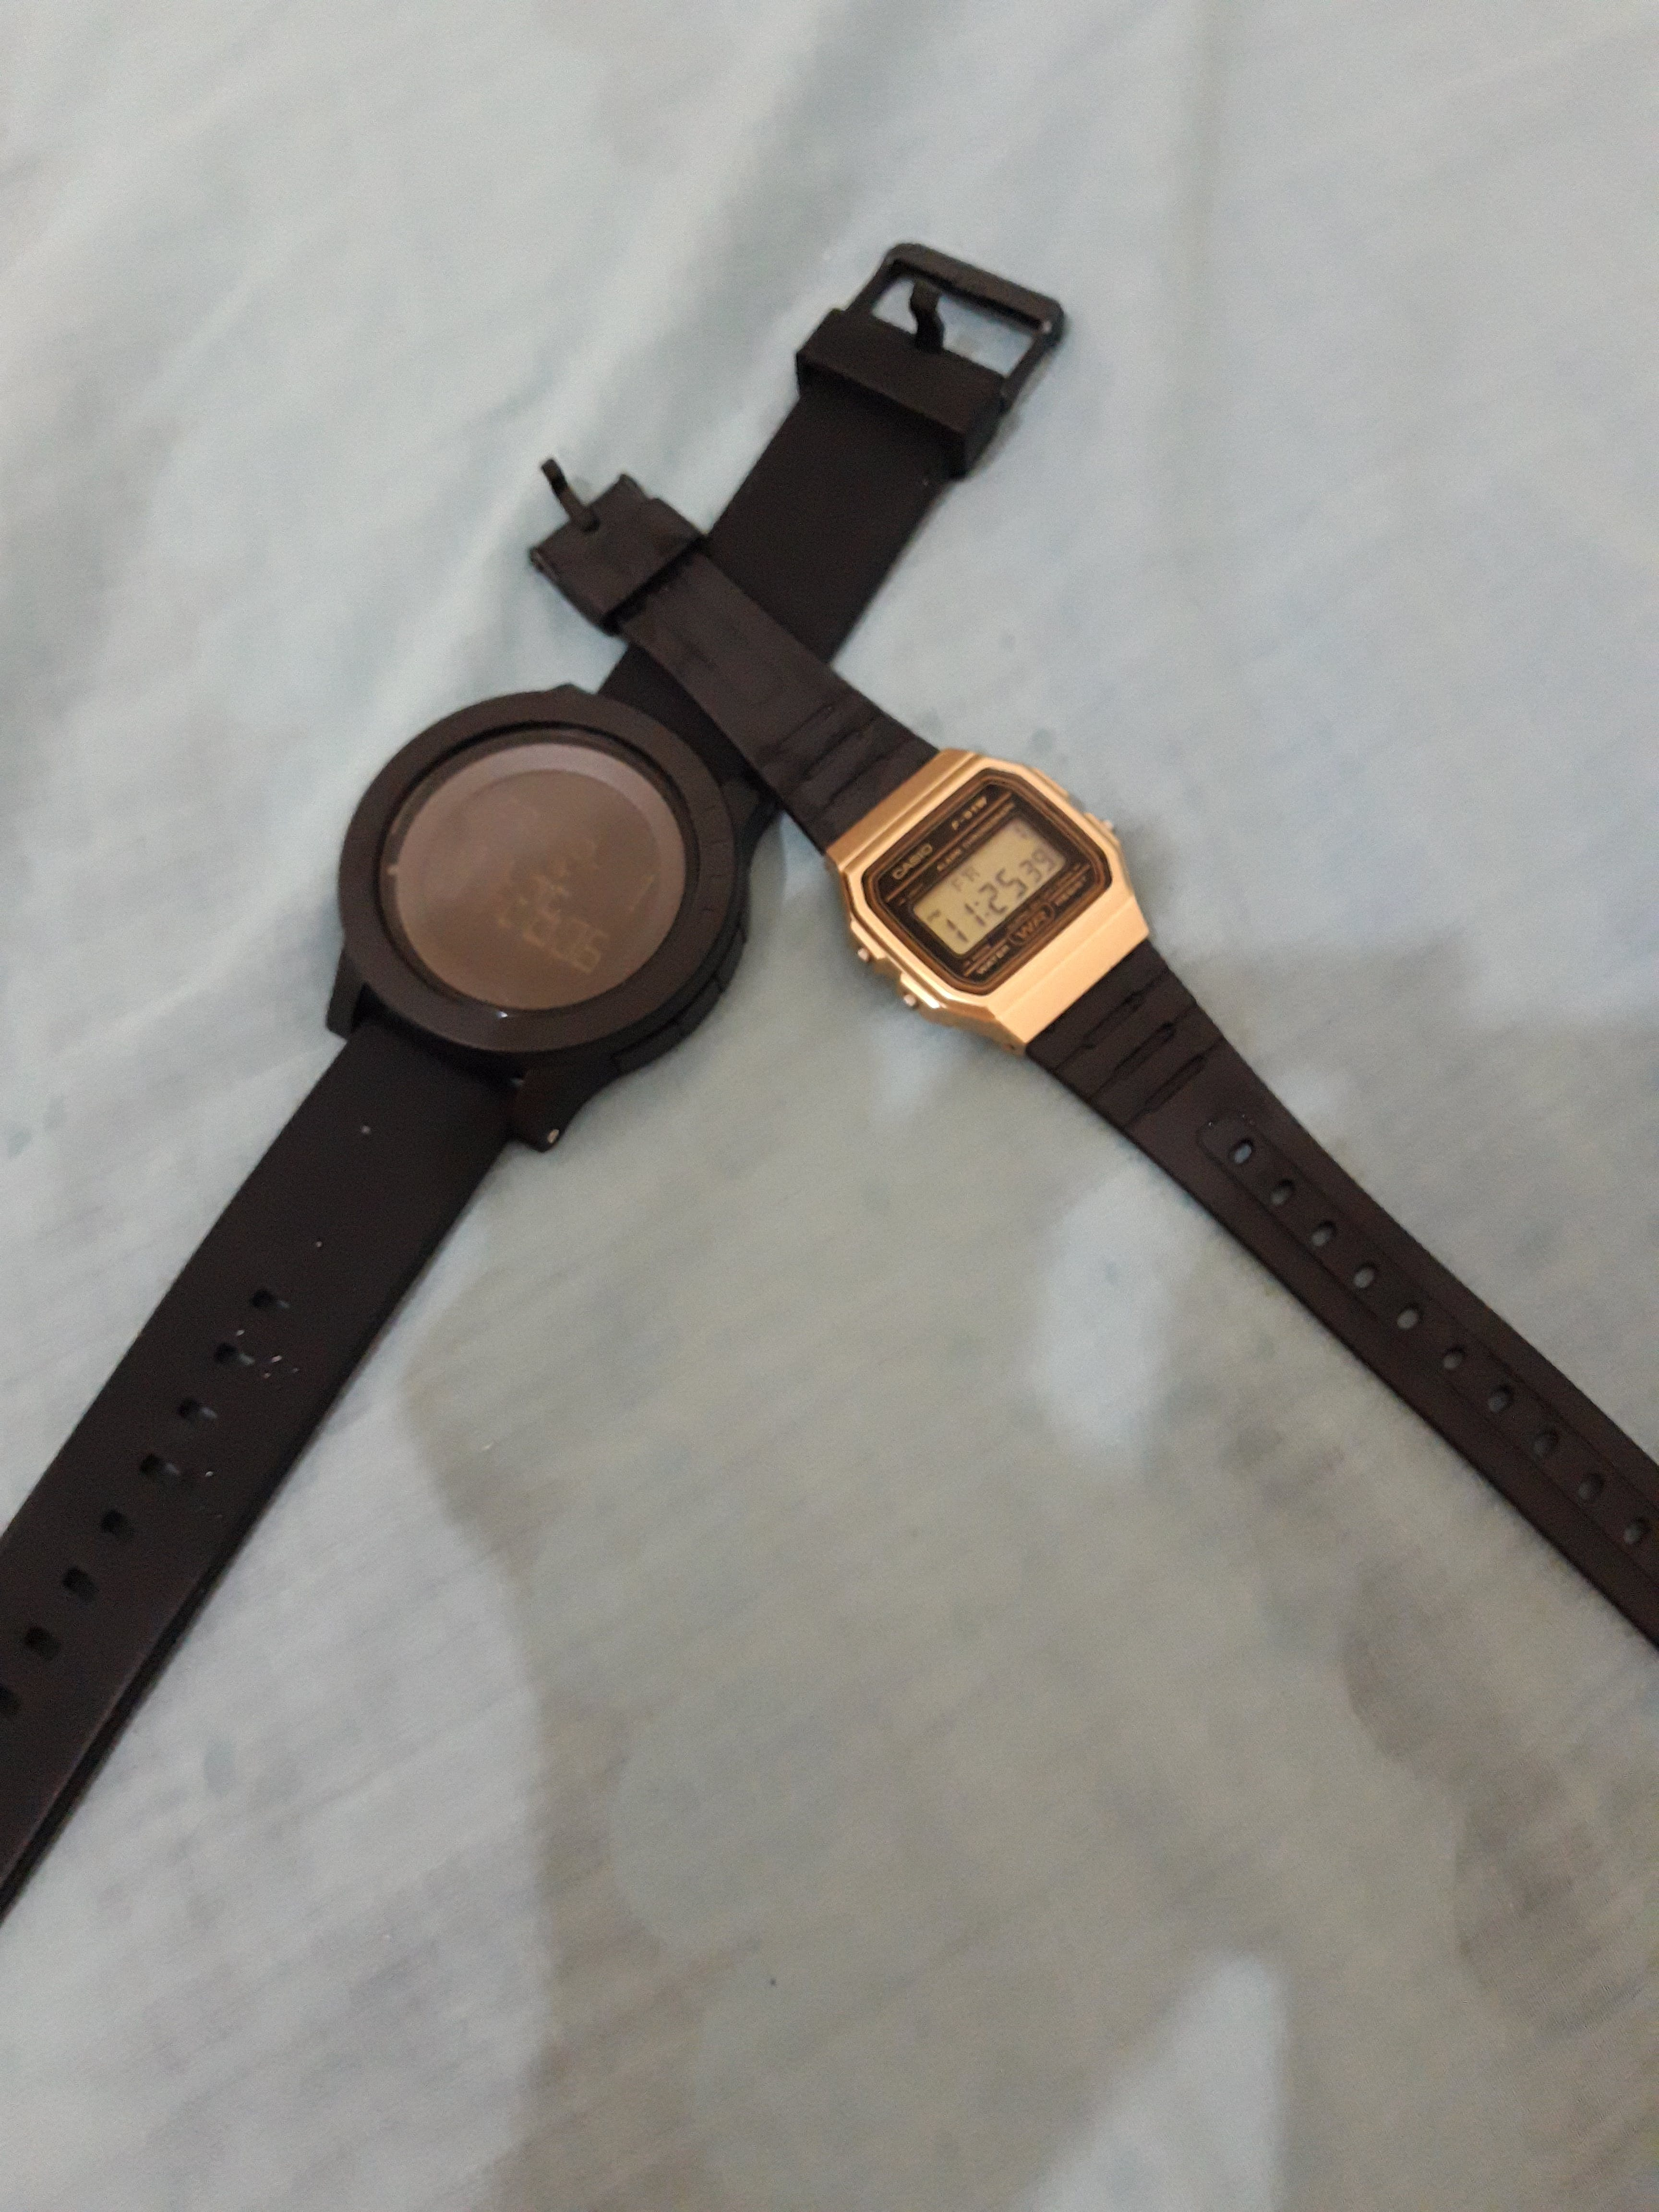 ac40b1dd2fa Legit watches. Mura pa and fast delivery.Thanks watchportal.